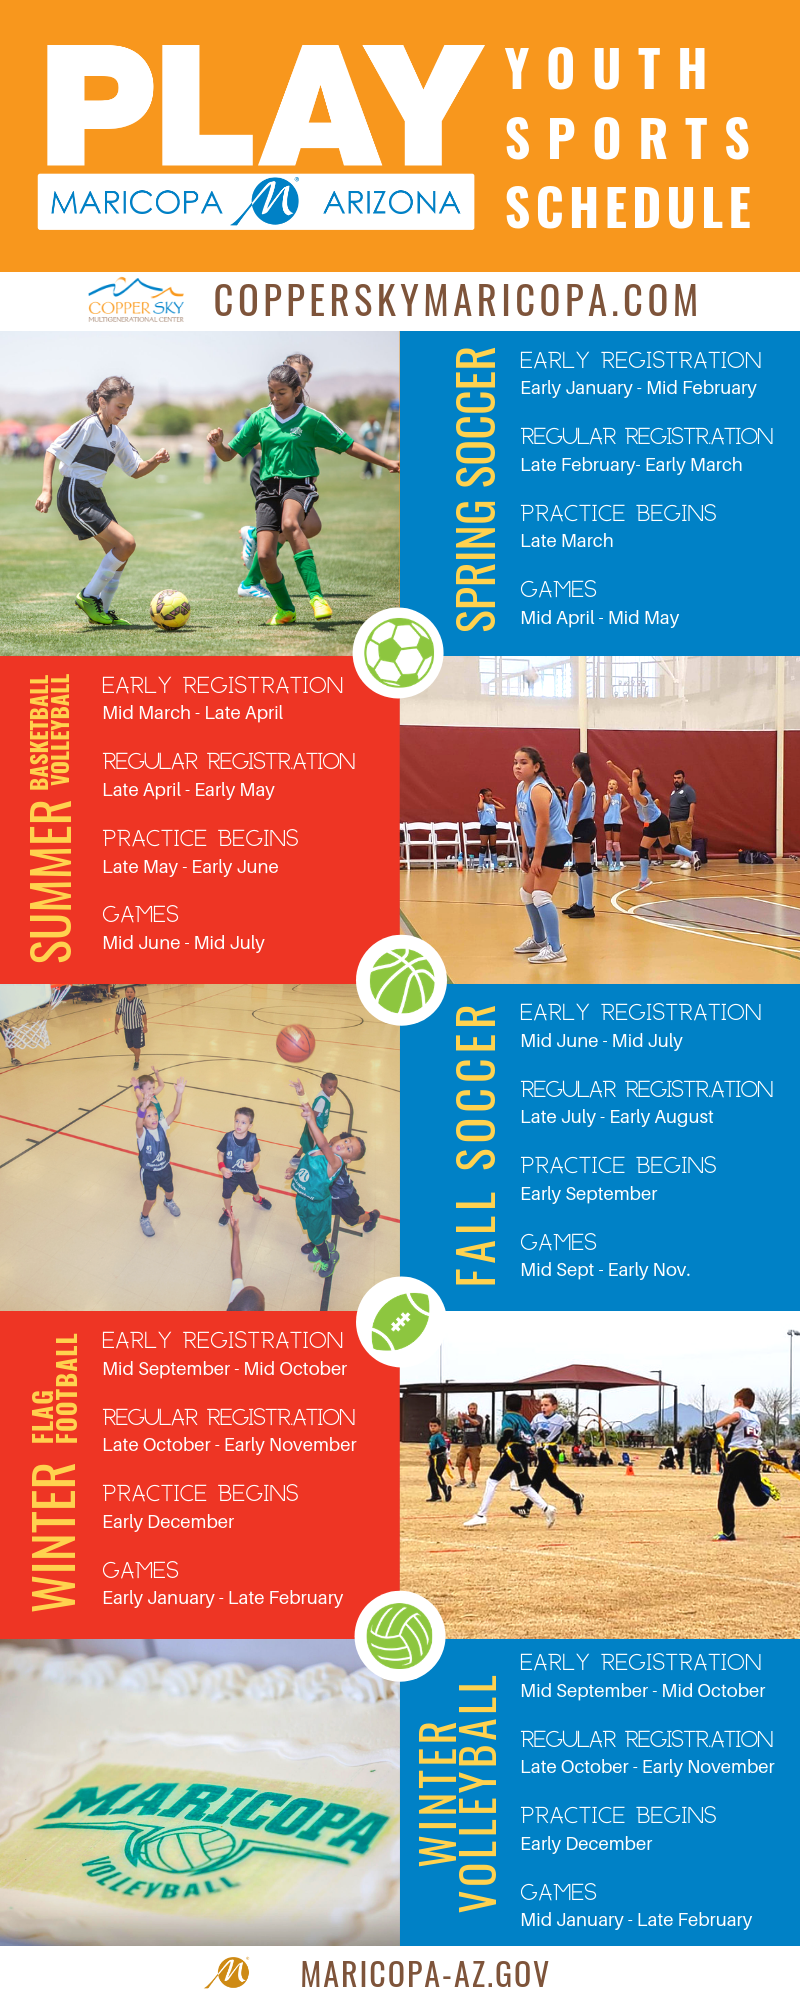 PLAY Youth Sports Schedule